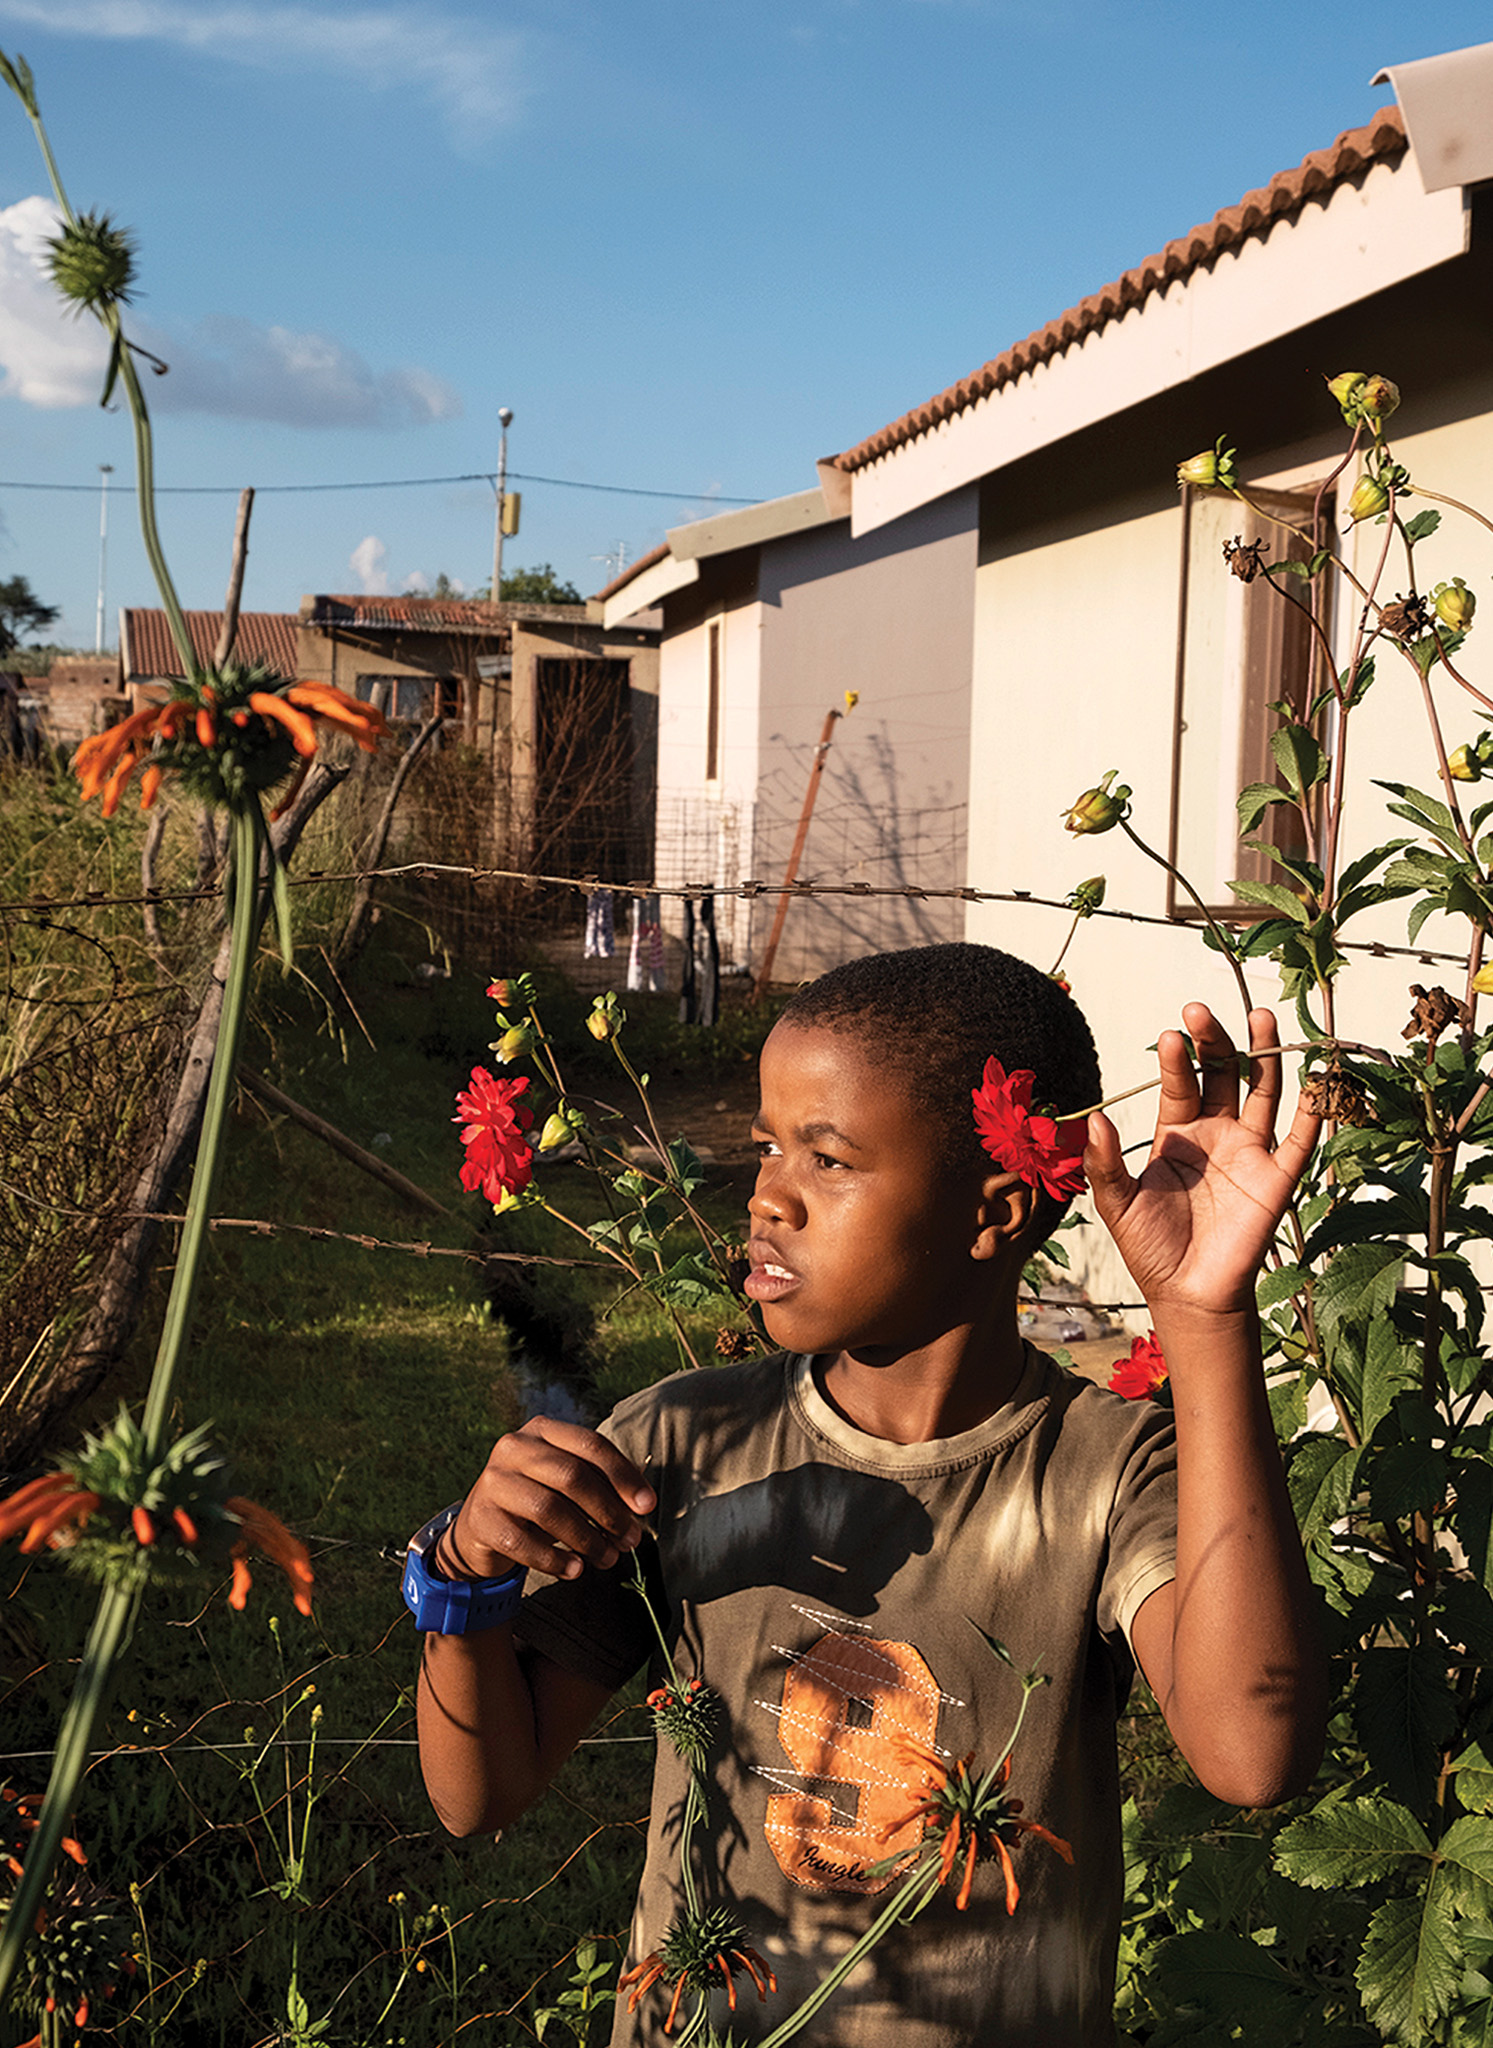 Picture of a young boy among red flowers in a garden